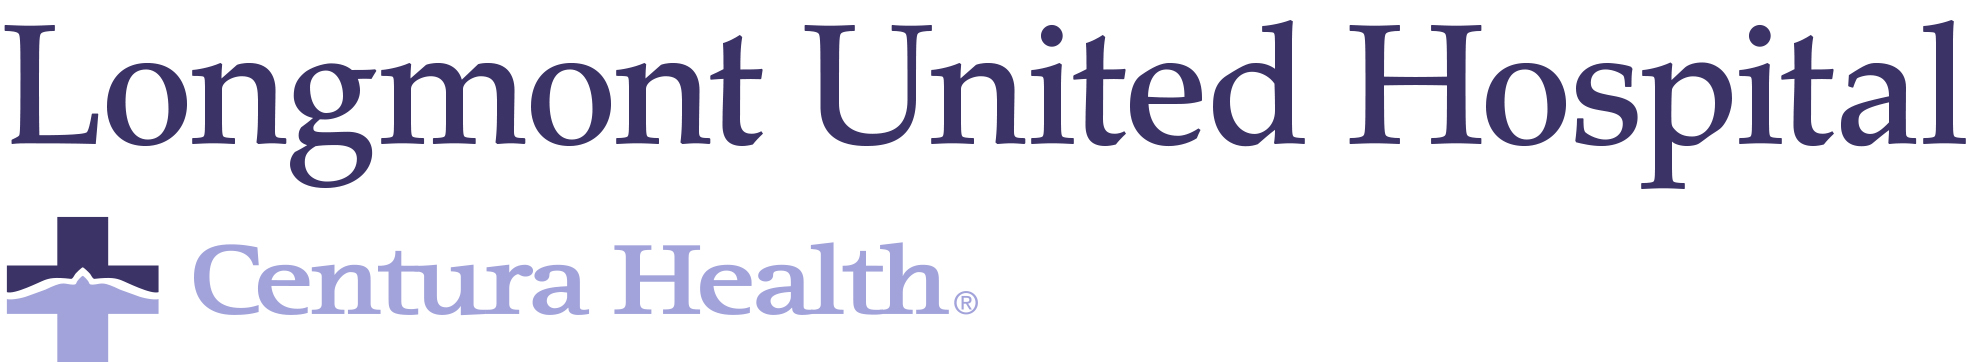 Longmont United Hospital logo